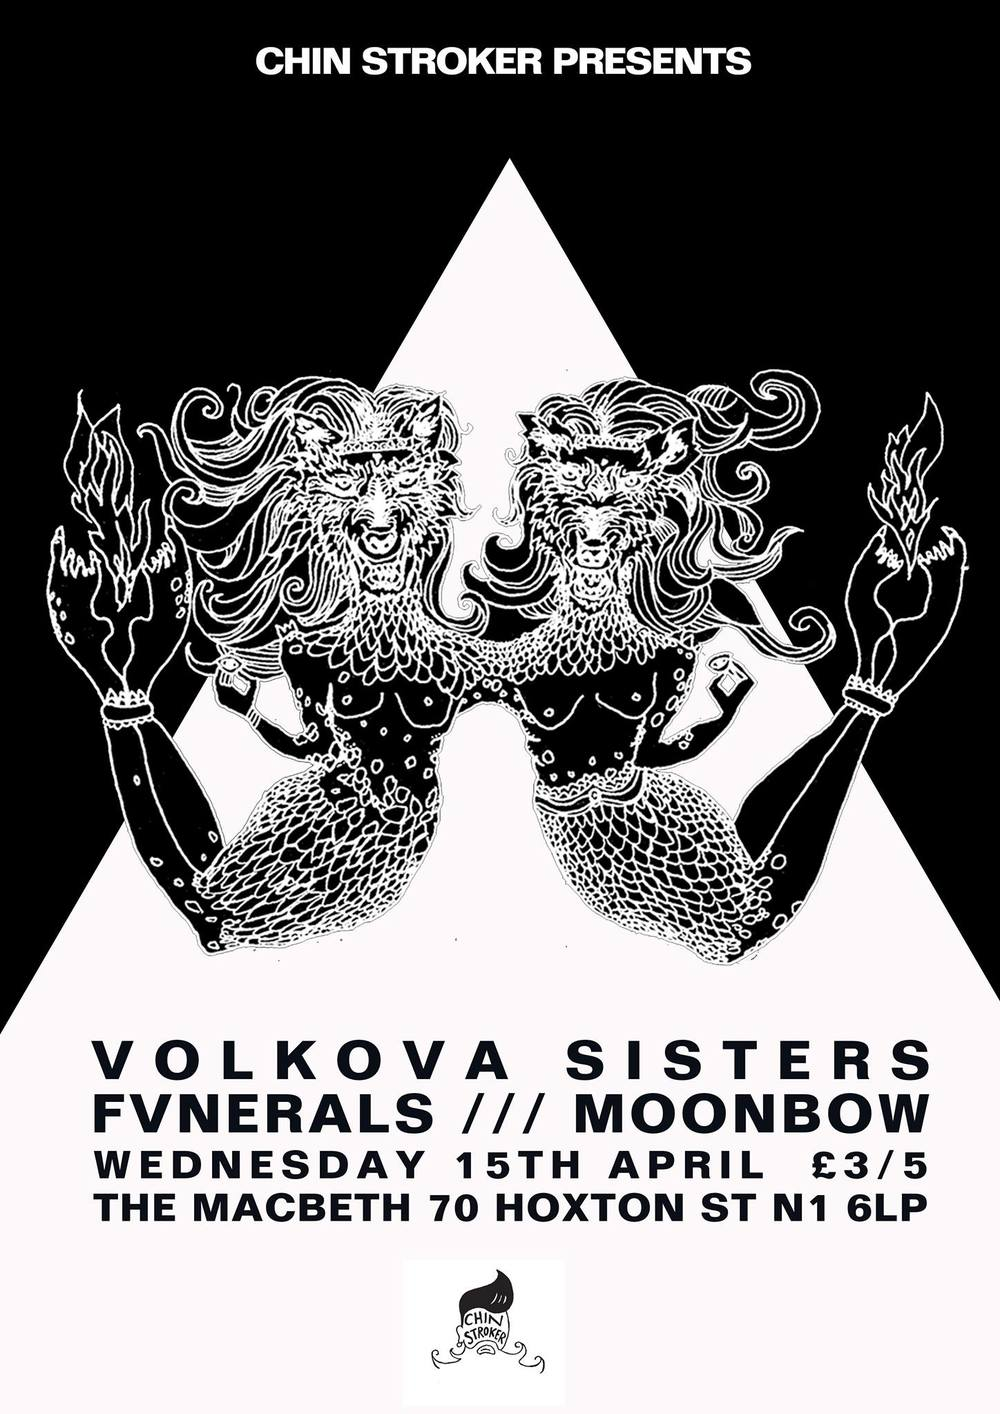 Chin Stroker invite back to The Macbeth the wonderful Hungarian Goth-Tronica trio Volkova Sisters for another highly anticipated headline show on the sound system that loves and nurtures their deep dark tones.  In support we have the equally dark FVNERALS from Brighton out on their UK tour - mixing macabre soundscapes and ambience with solid songs to give them their backbone creating an engaging structure and presence which drives home their cerebral swirls.  We are also excited to have a rare show from the ethereal Moonbow for their debut at The Macbeth. £3/5 TICKETS: https://billetto.co.uk/en/events/cs-volkova-sisters-fvnerals-moonbow